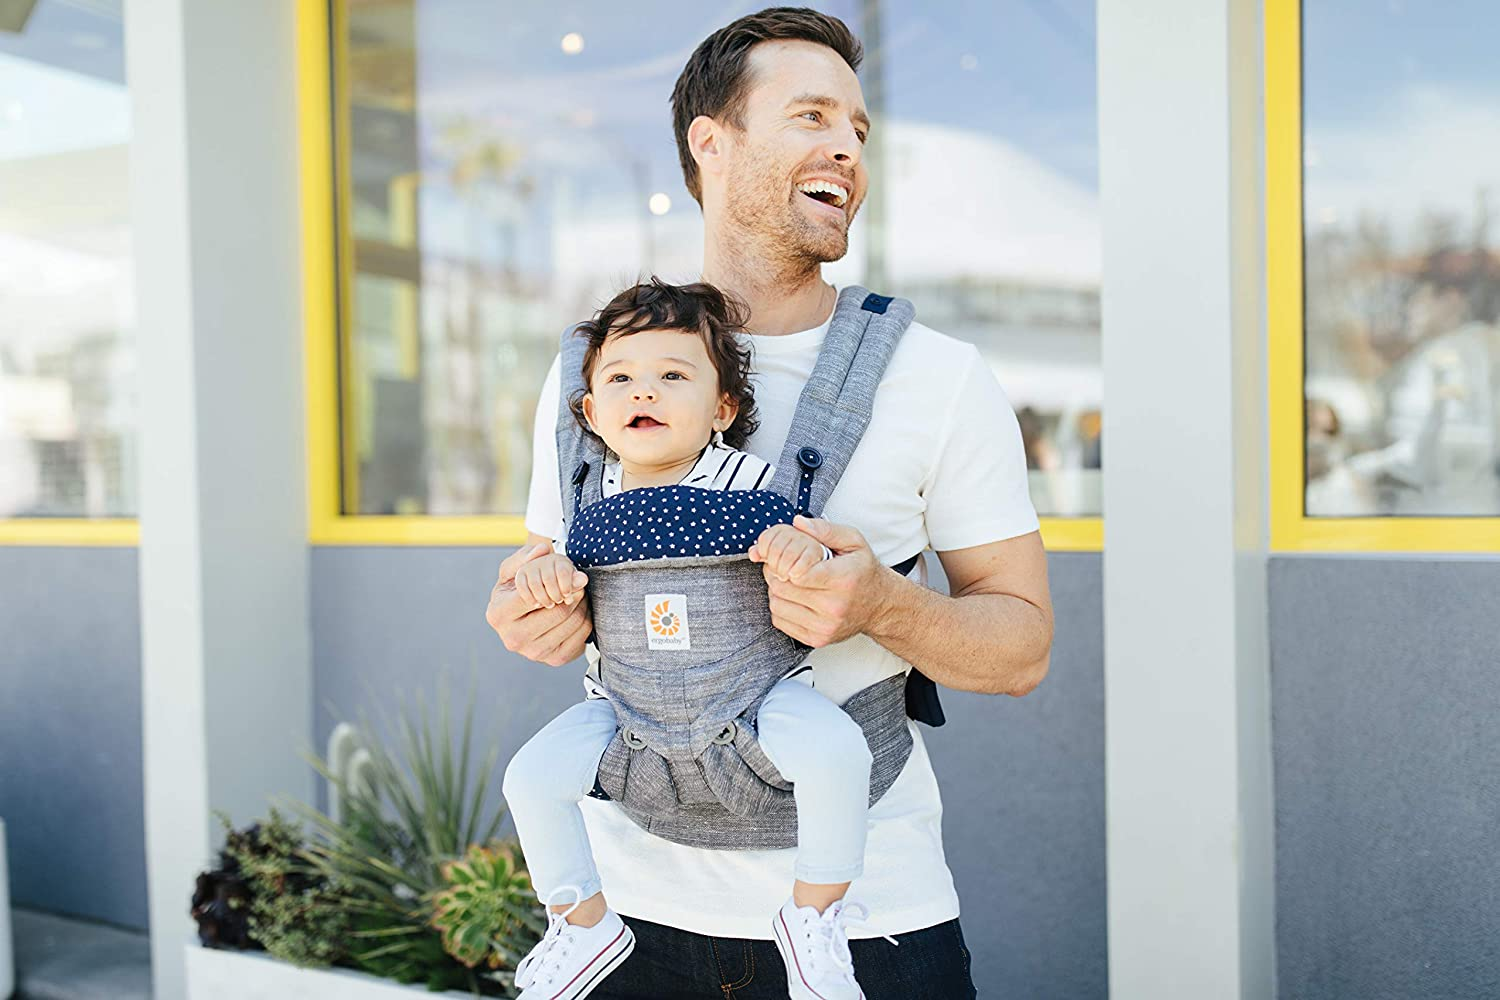 4 Ergonomic Carry Positions Front Back Front Facing 360 Cool Air Khaki Green Backpack Carrier Ergobaby Baby Carrier for Newborn up to 3 Years